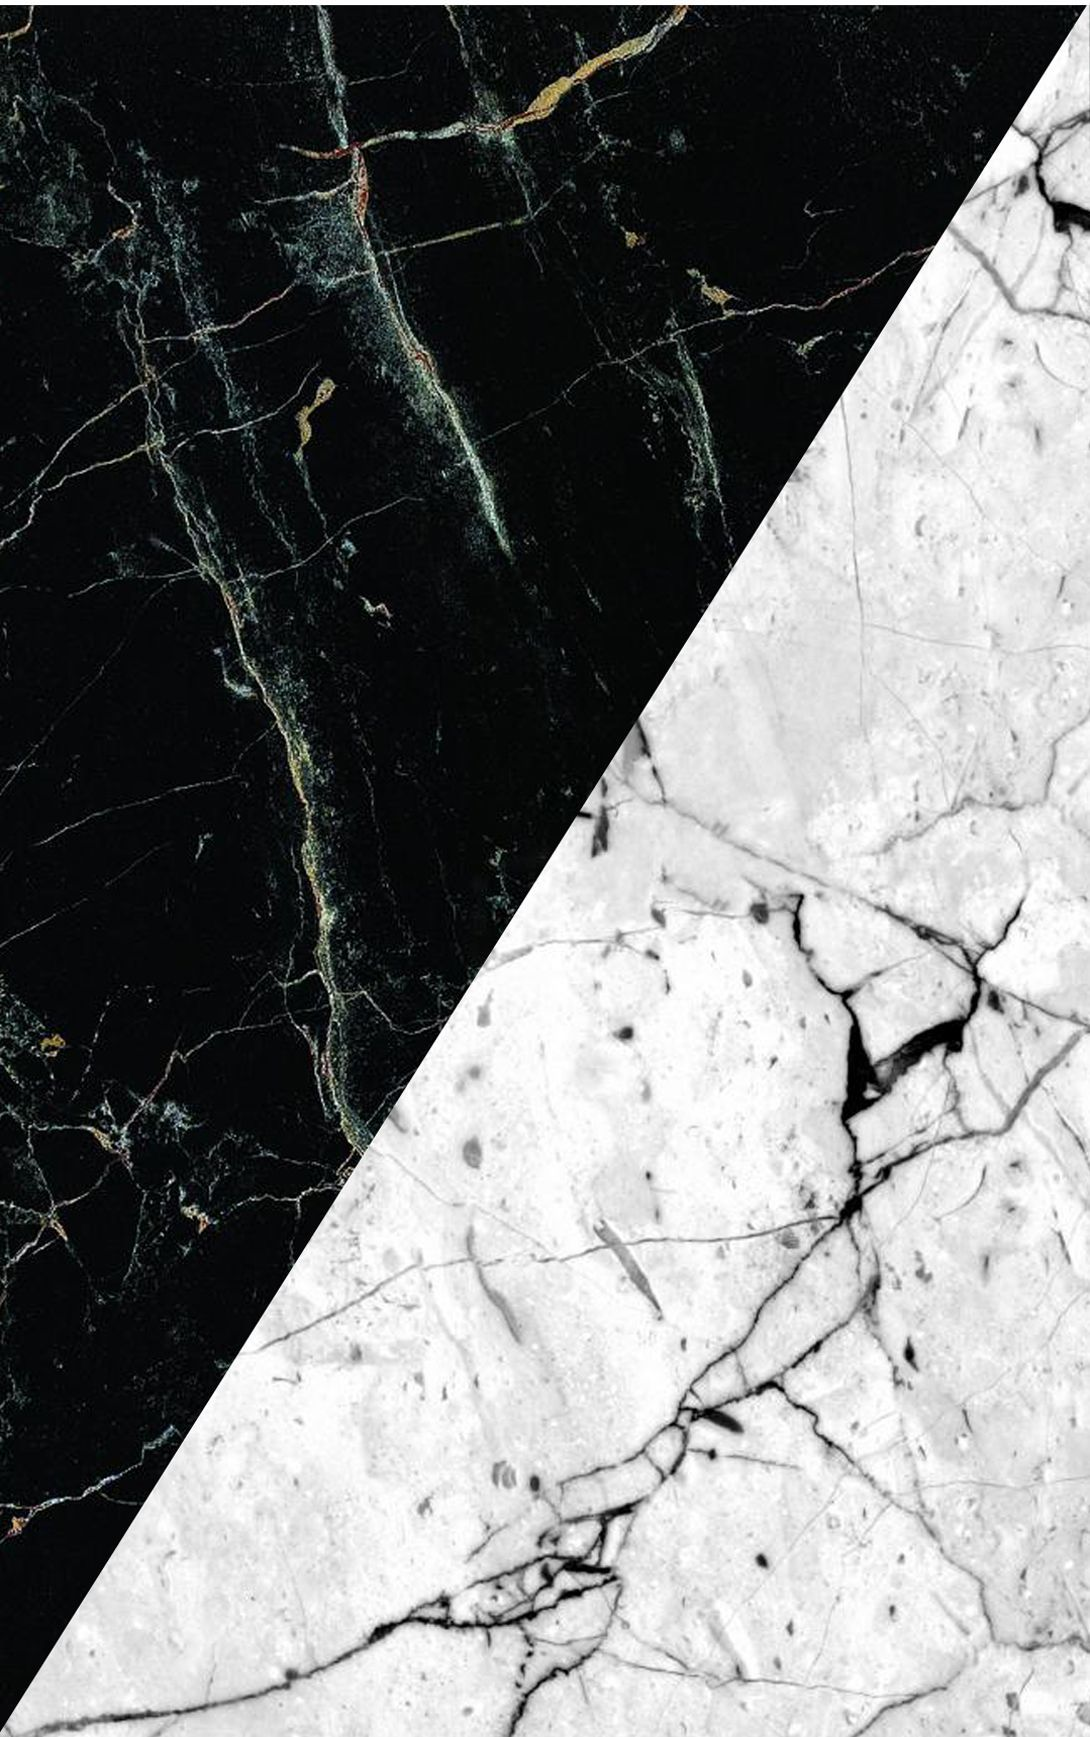 Marble Wallpaper Black And White Marble Background Wallpaper For You The Best Wallpaper For Desktop Mobile